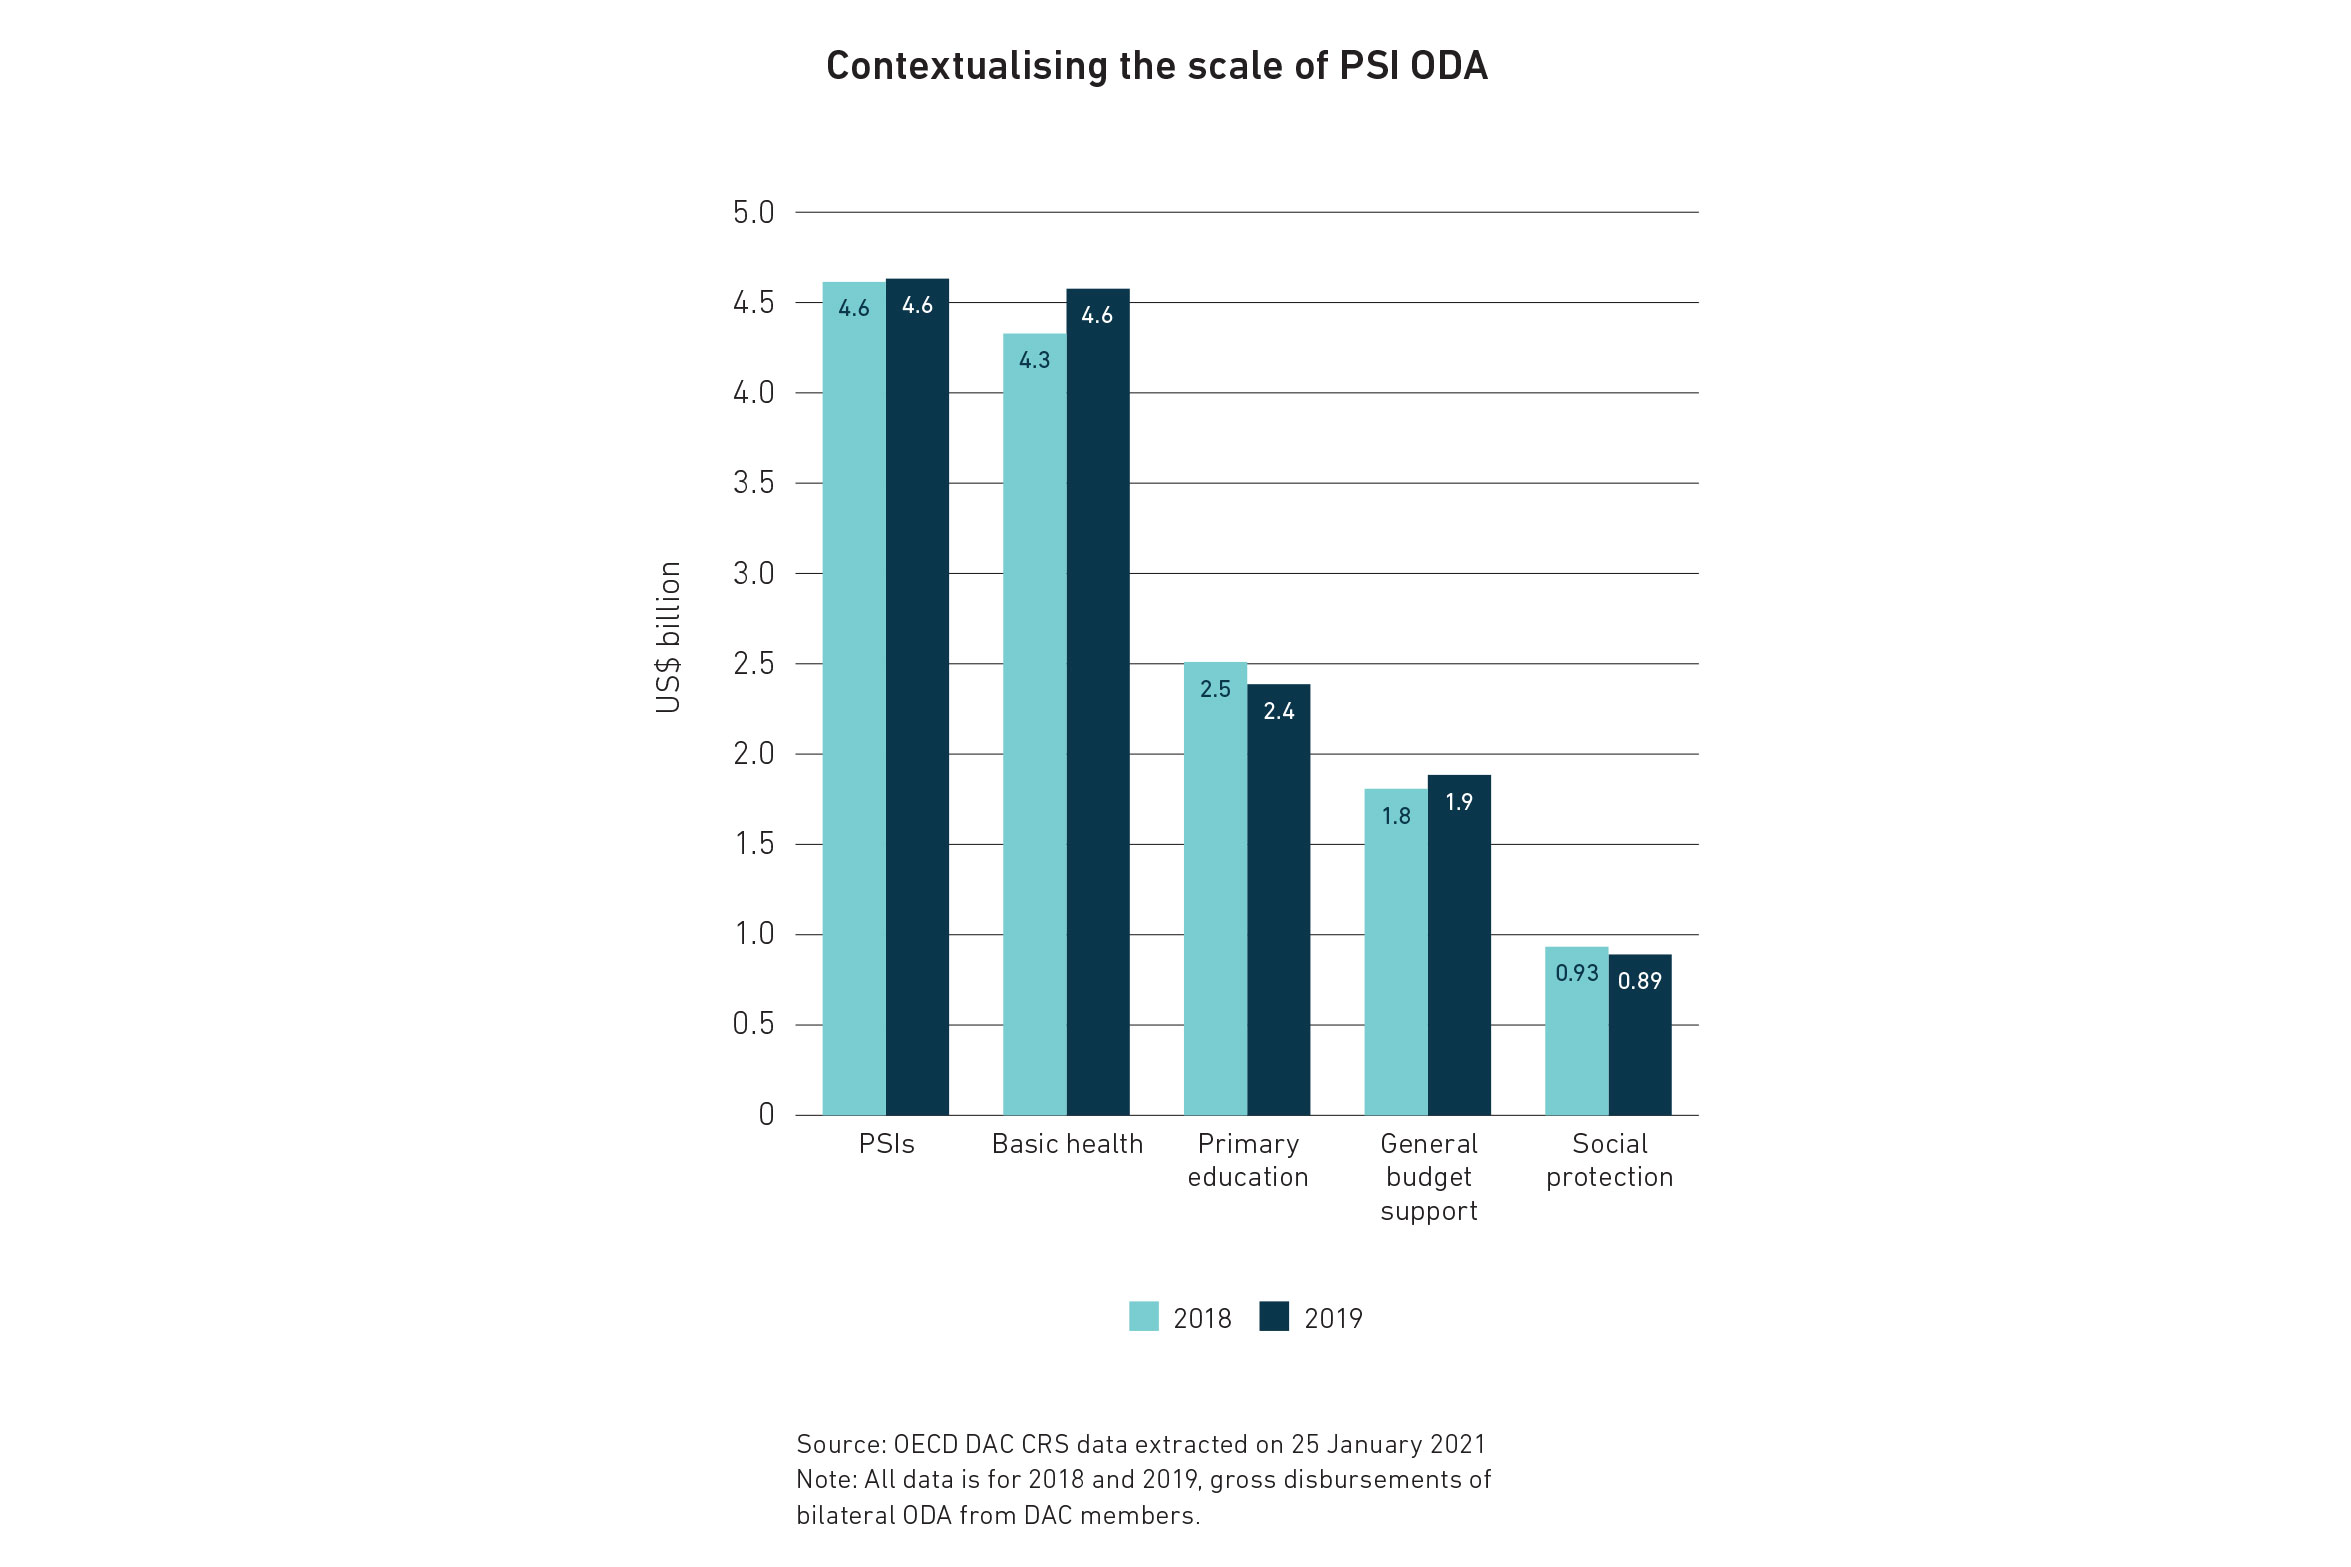 A bar graph contextualising the scale of PSI. The full data is available on page 18 of the PDF, which can be downloaded at http://www.eurodad.org/time_for_action